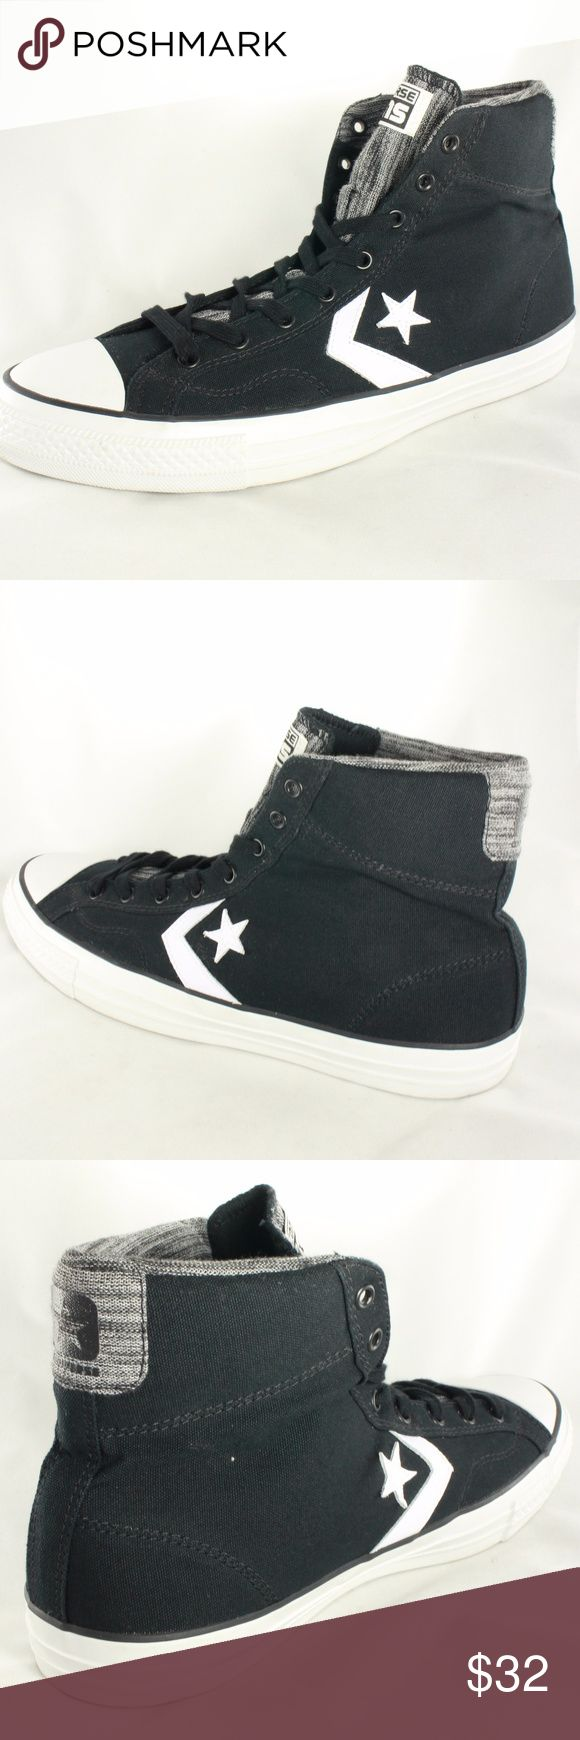 NEW CONVERSE Star Player High Top Sneakers All new Converse High Top sneakers. Never worn, perfectly new. Size 13 US Converse Shoes Sneakers